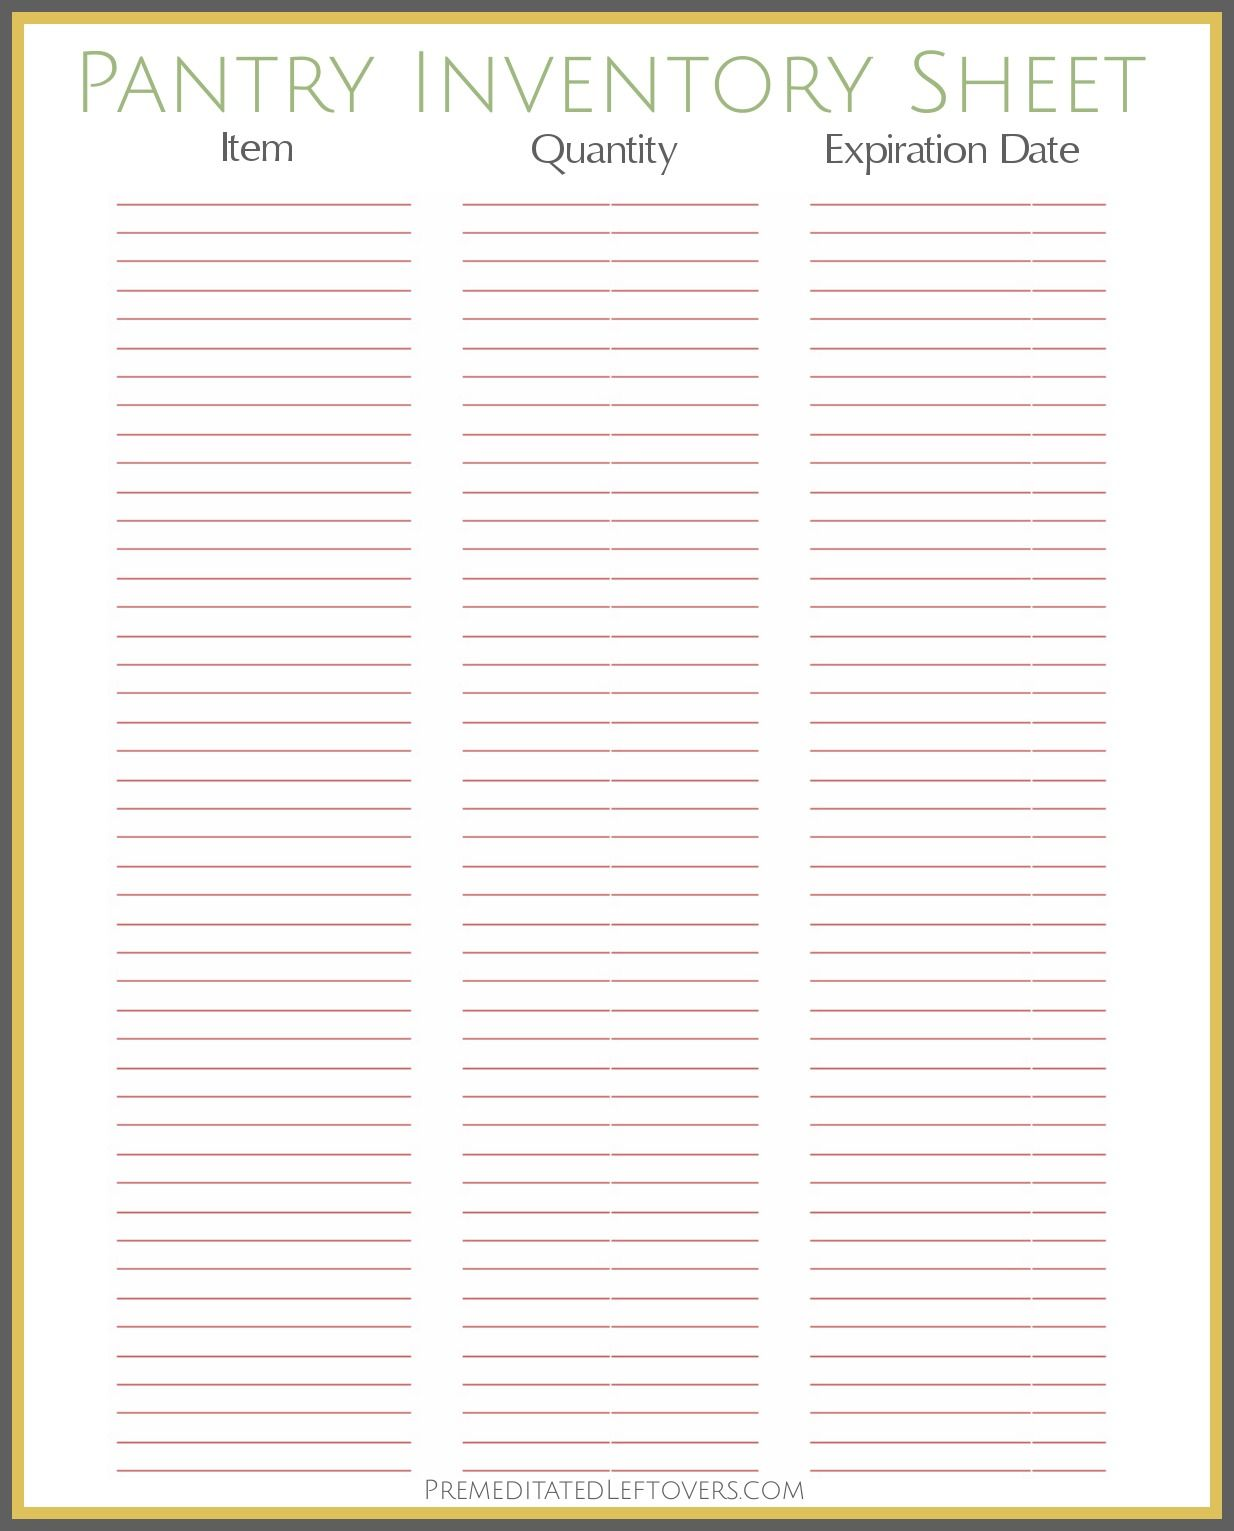 photograph relating to Inventory Sheets Printable called Free of charge Printable Pantry Stock Sheet  Printables - Neat